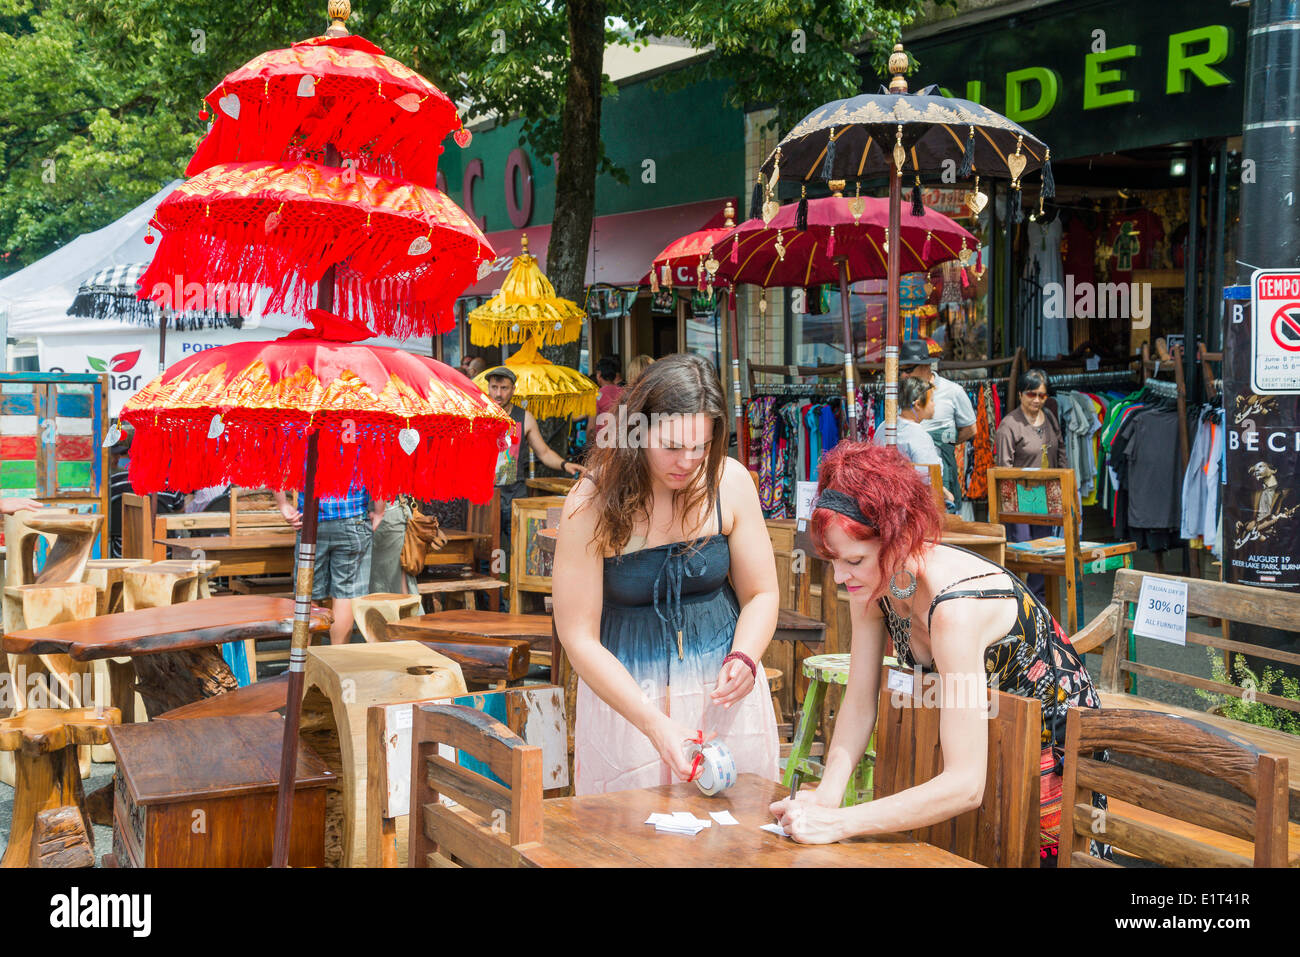 Salon de jardin et parasol vente-trottoir, Commercial Drive, Vancouver, British Columbia, Canada Photo Stock